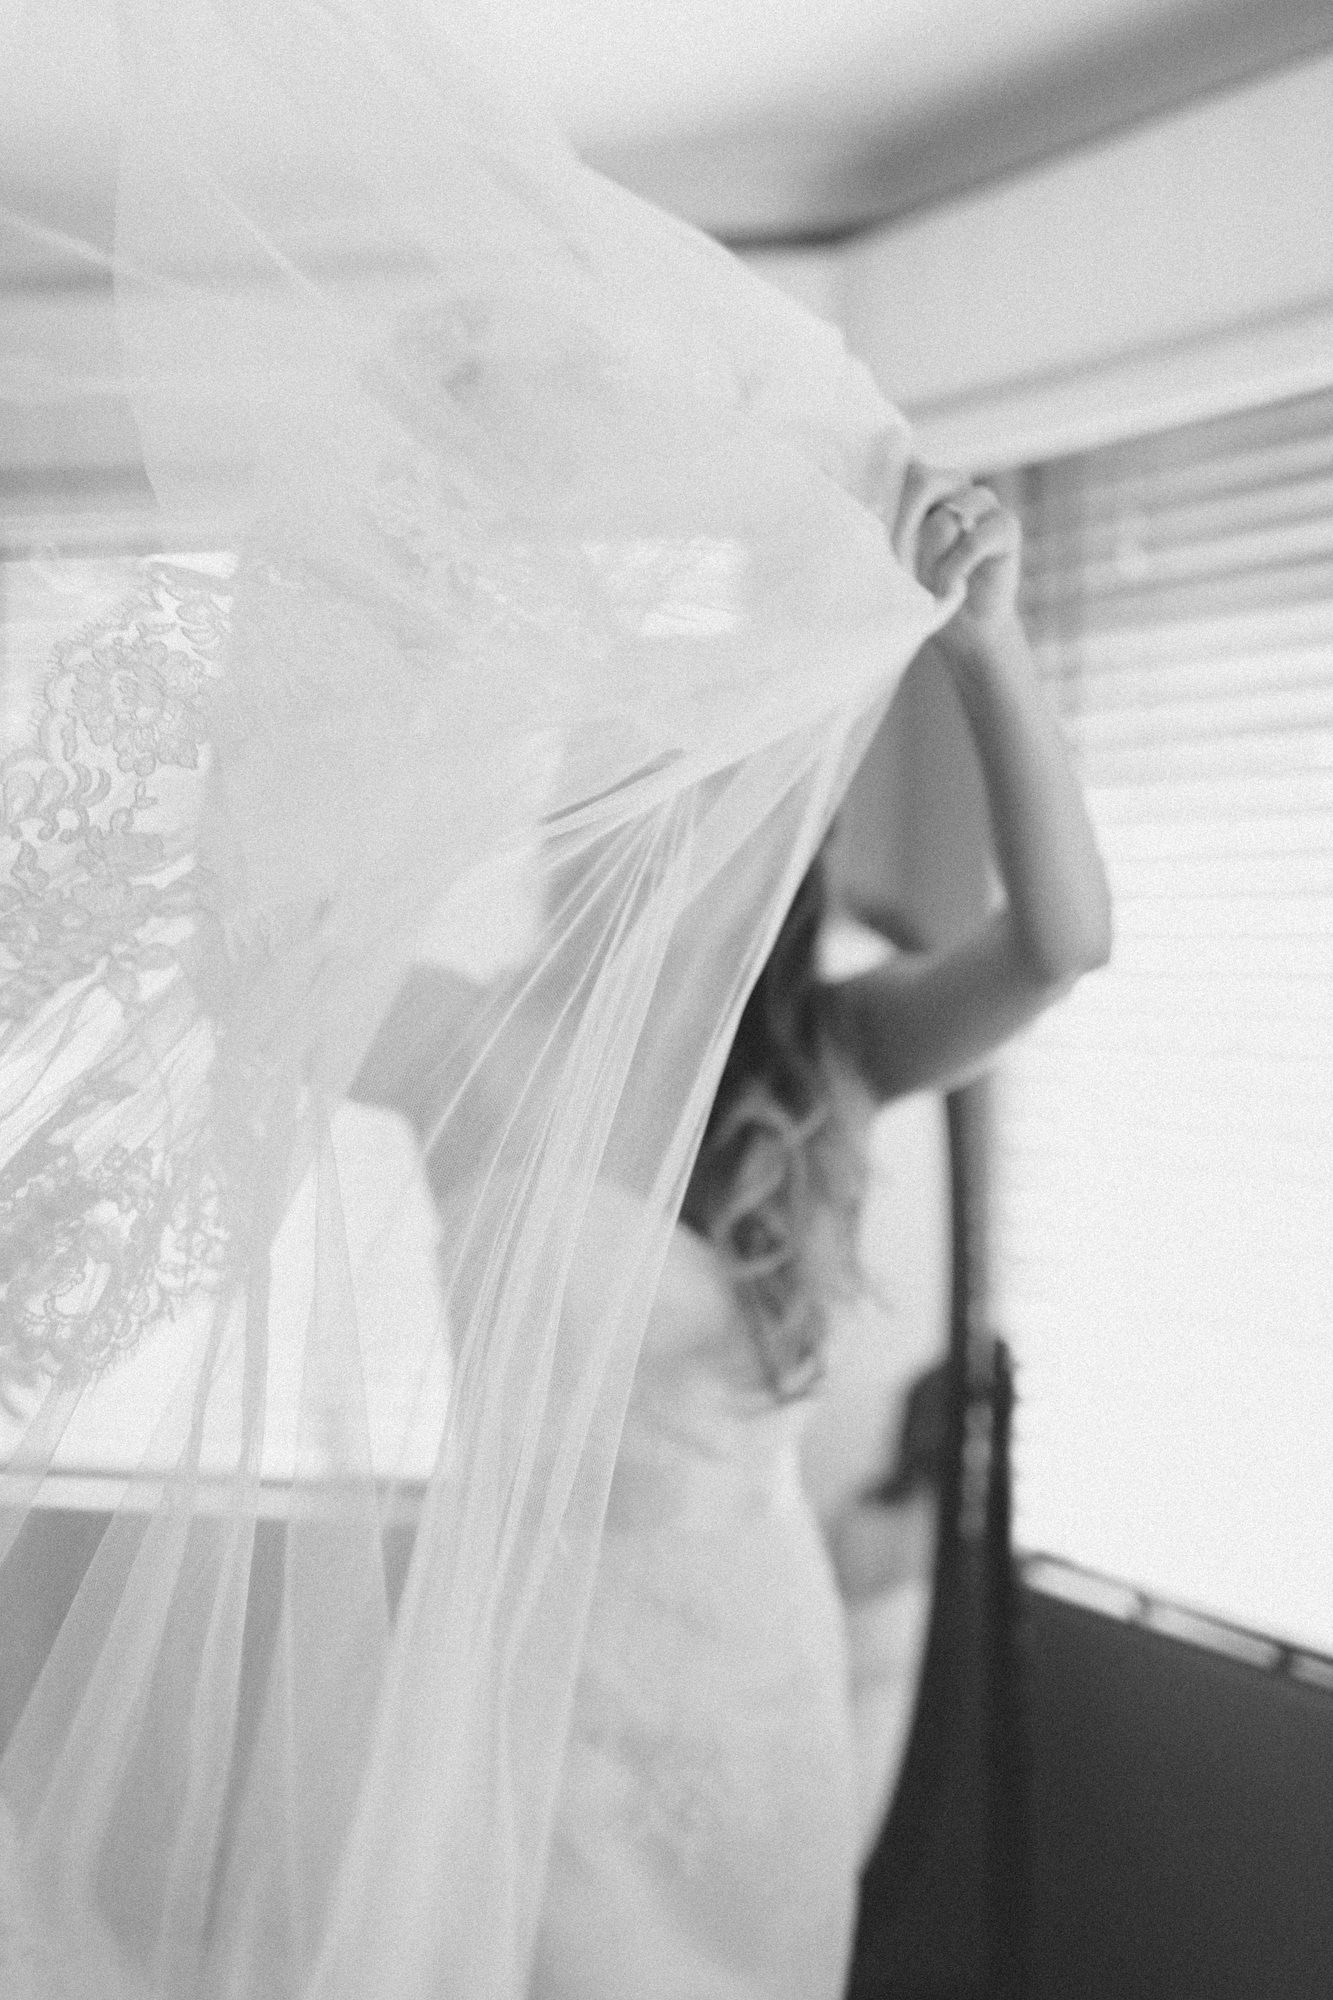 CARTER-ROSE-PHOTOGRAPHY-MARSHALL-WEDDING-PHOTOGRAPHY-30.JPG